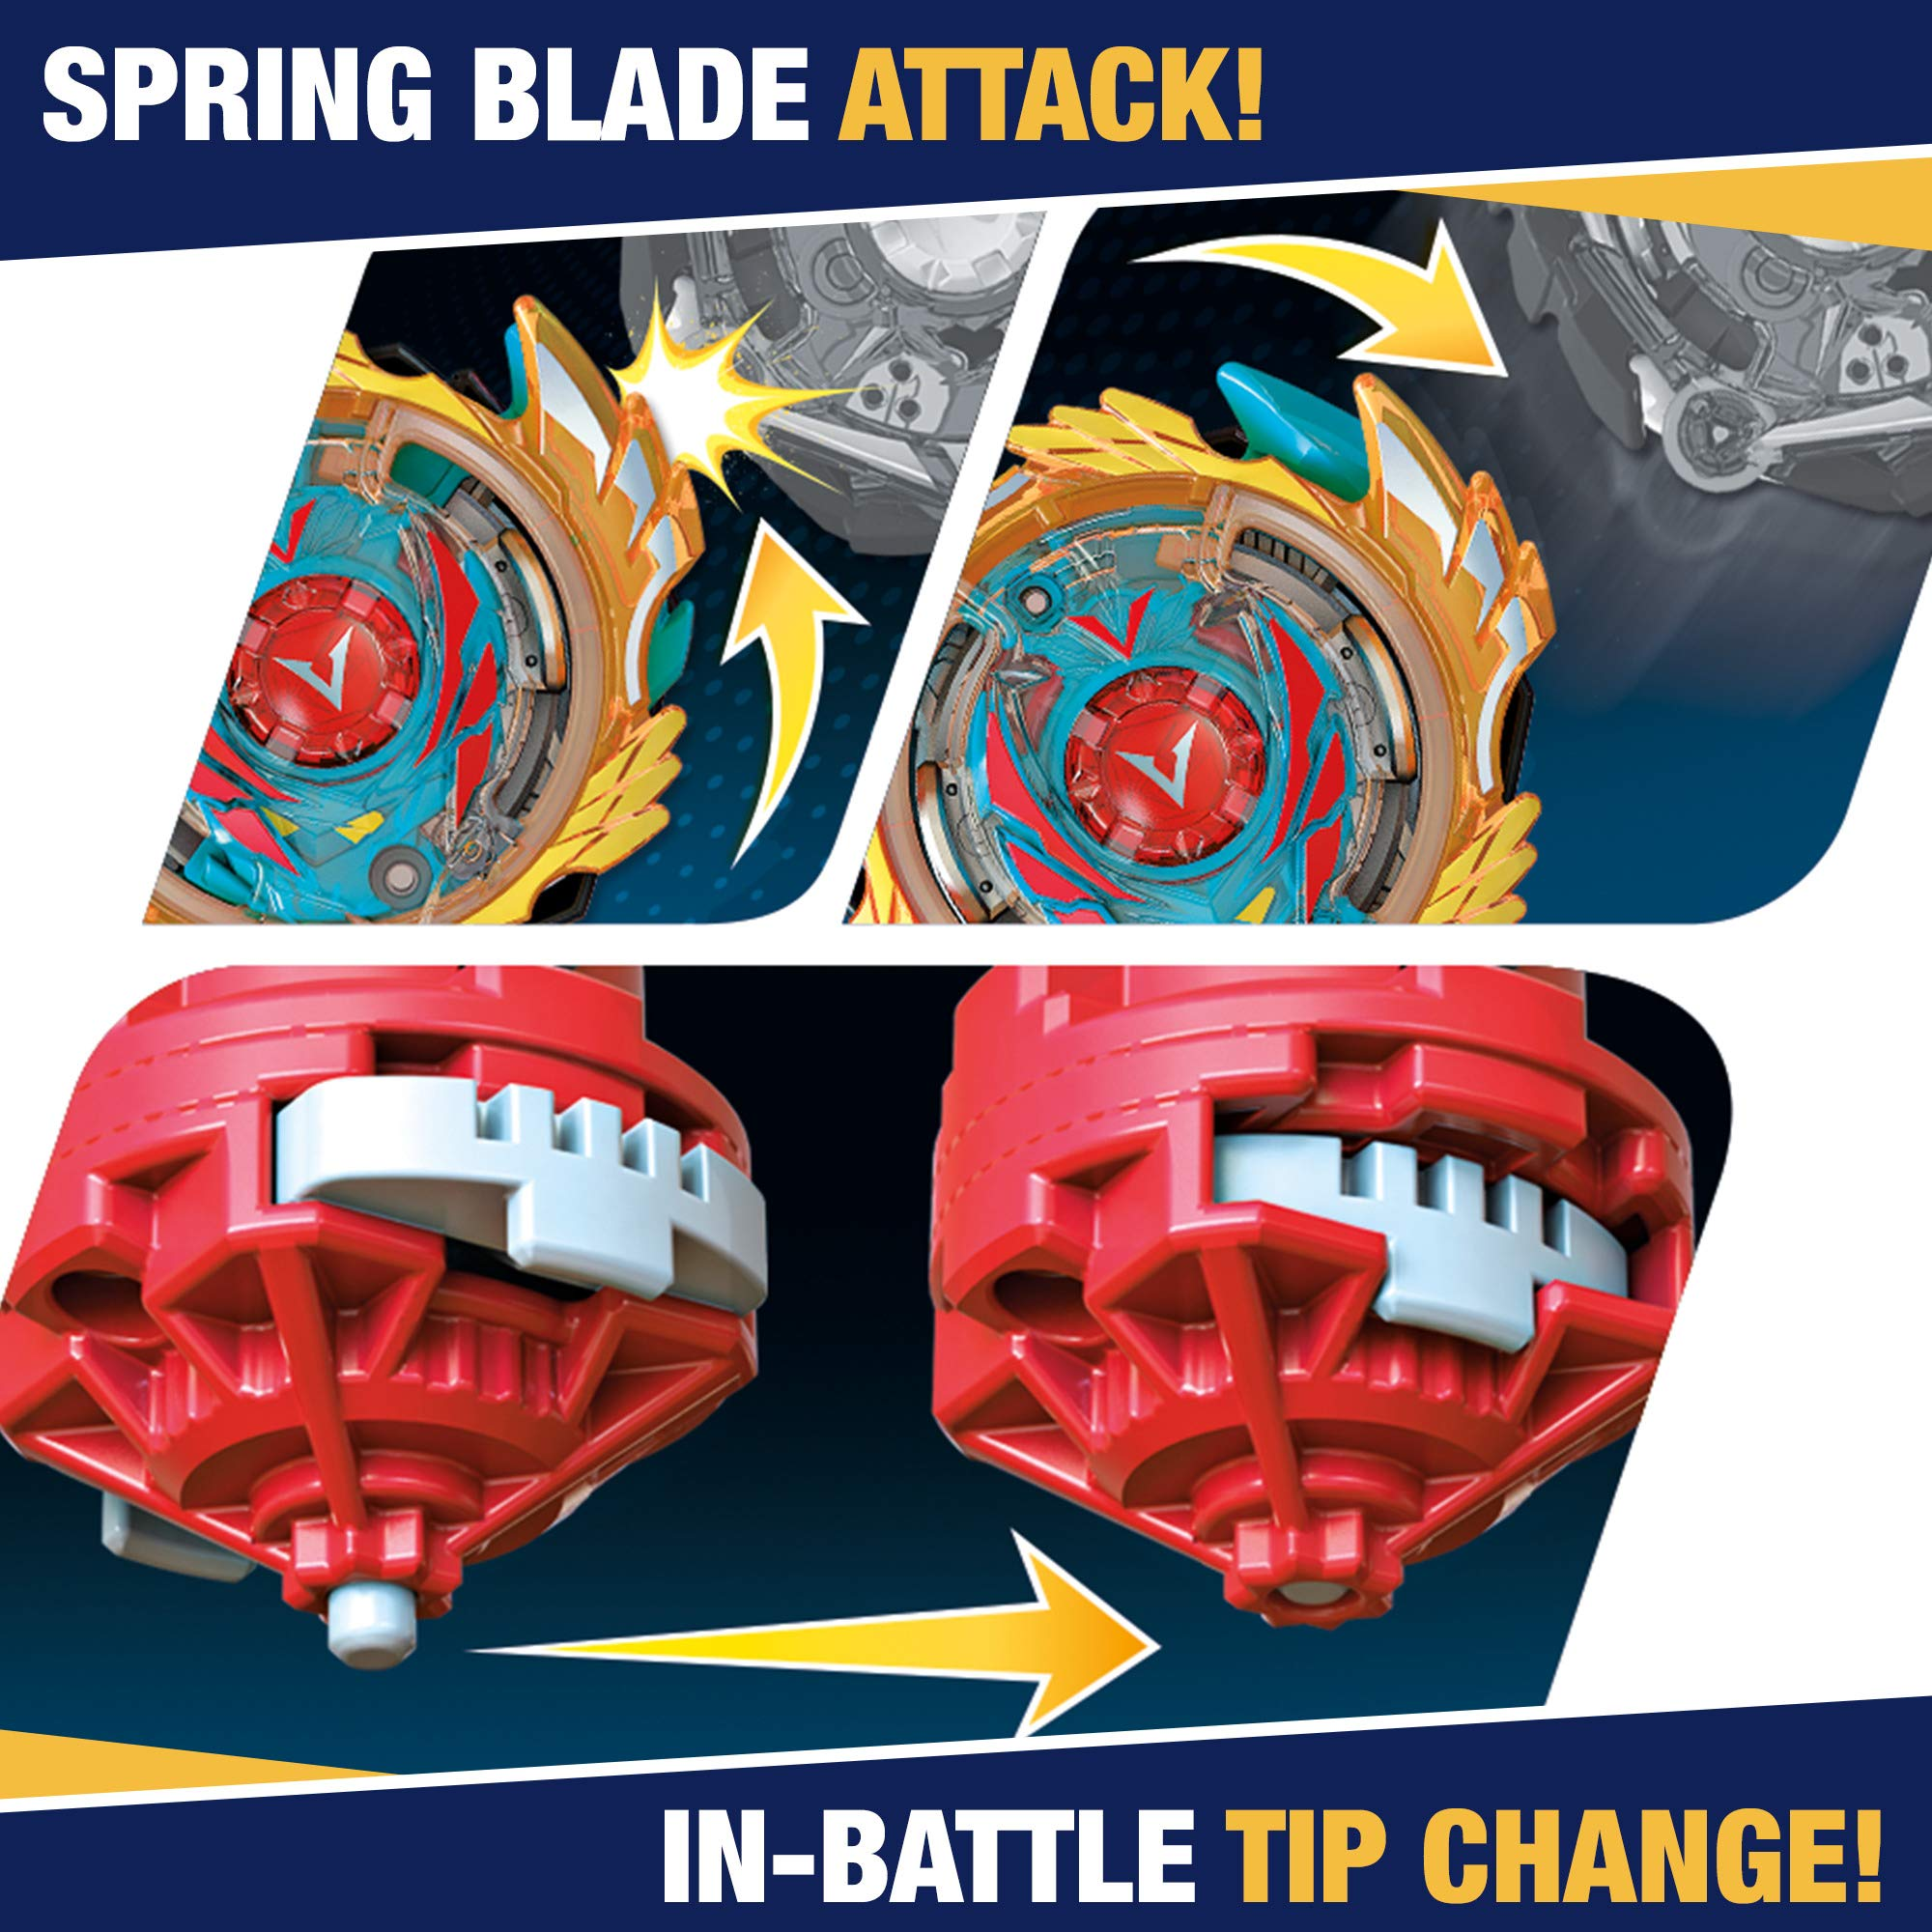 Beyblade Burst Evolution Elite Warrior 4-Pack - 4 Iconic Right-Spin Battling Tops, Age 8+ Toy E2458AC1 (Amazon Exclusive) by BEYBLADE (Image #4)